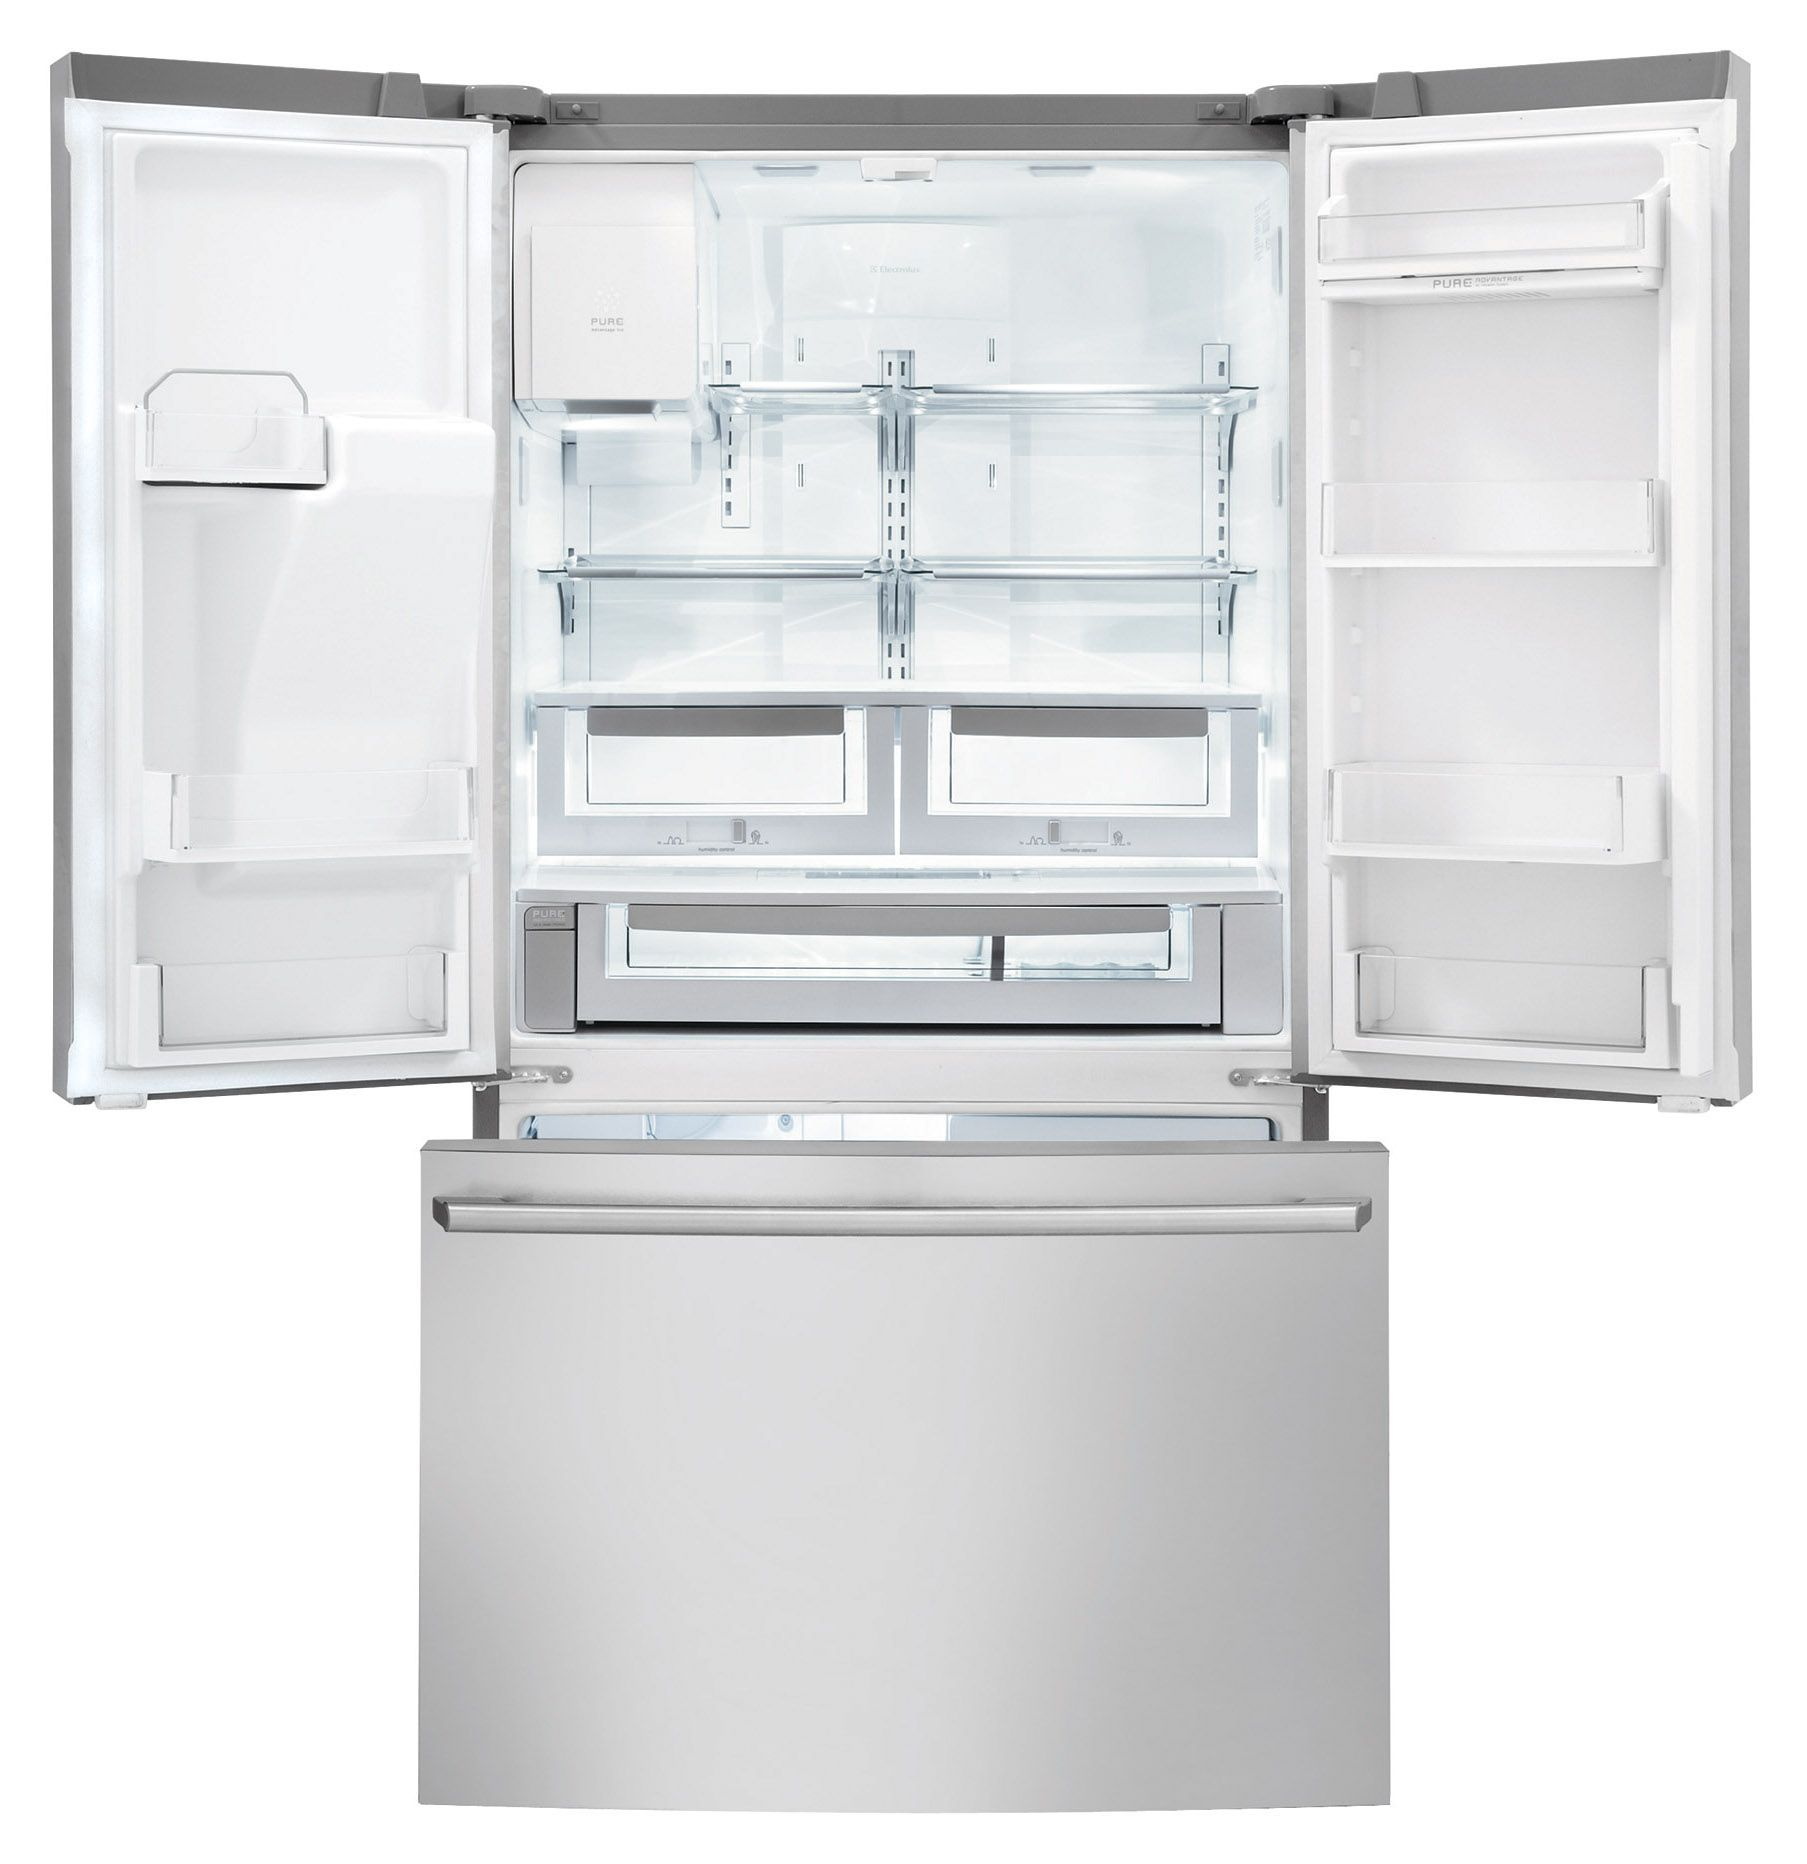 Electrolux 28 cu.ft. French Door Refrigerator with Wave-Touch™ Controls - Stainless Steel